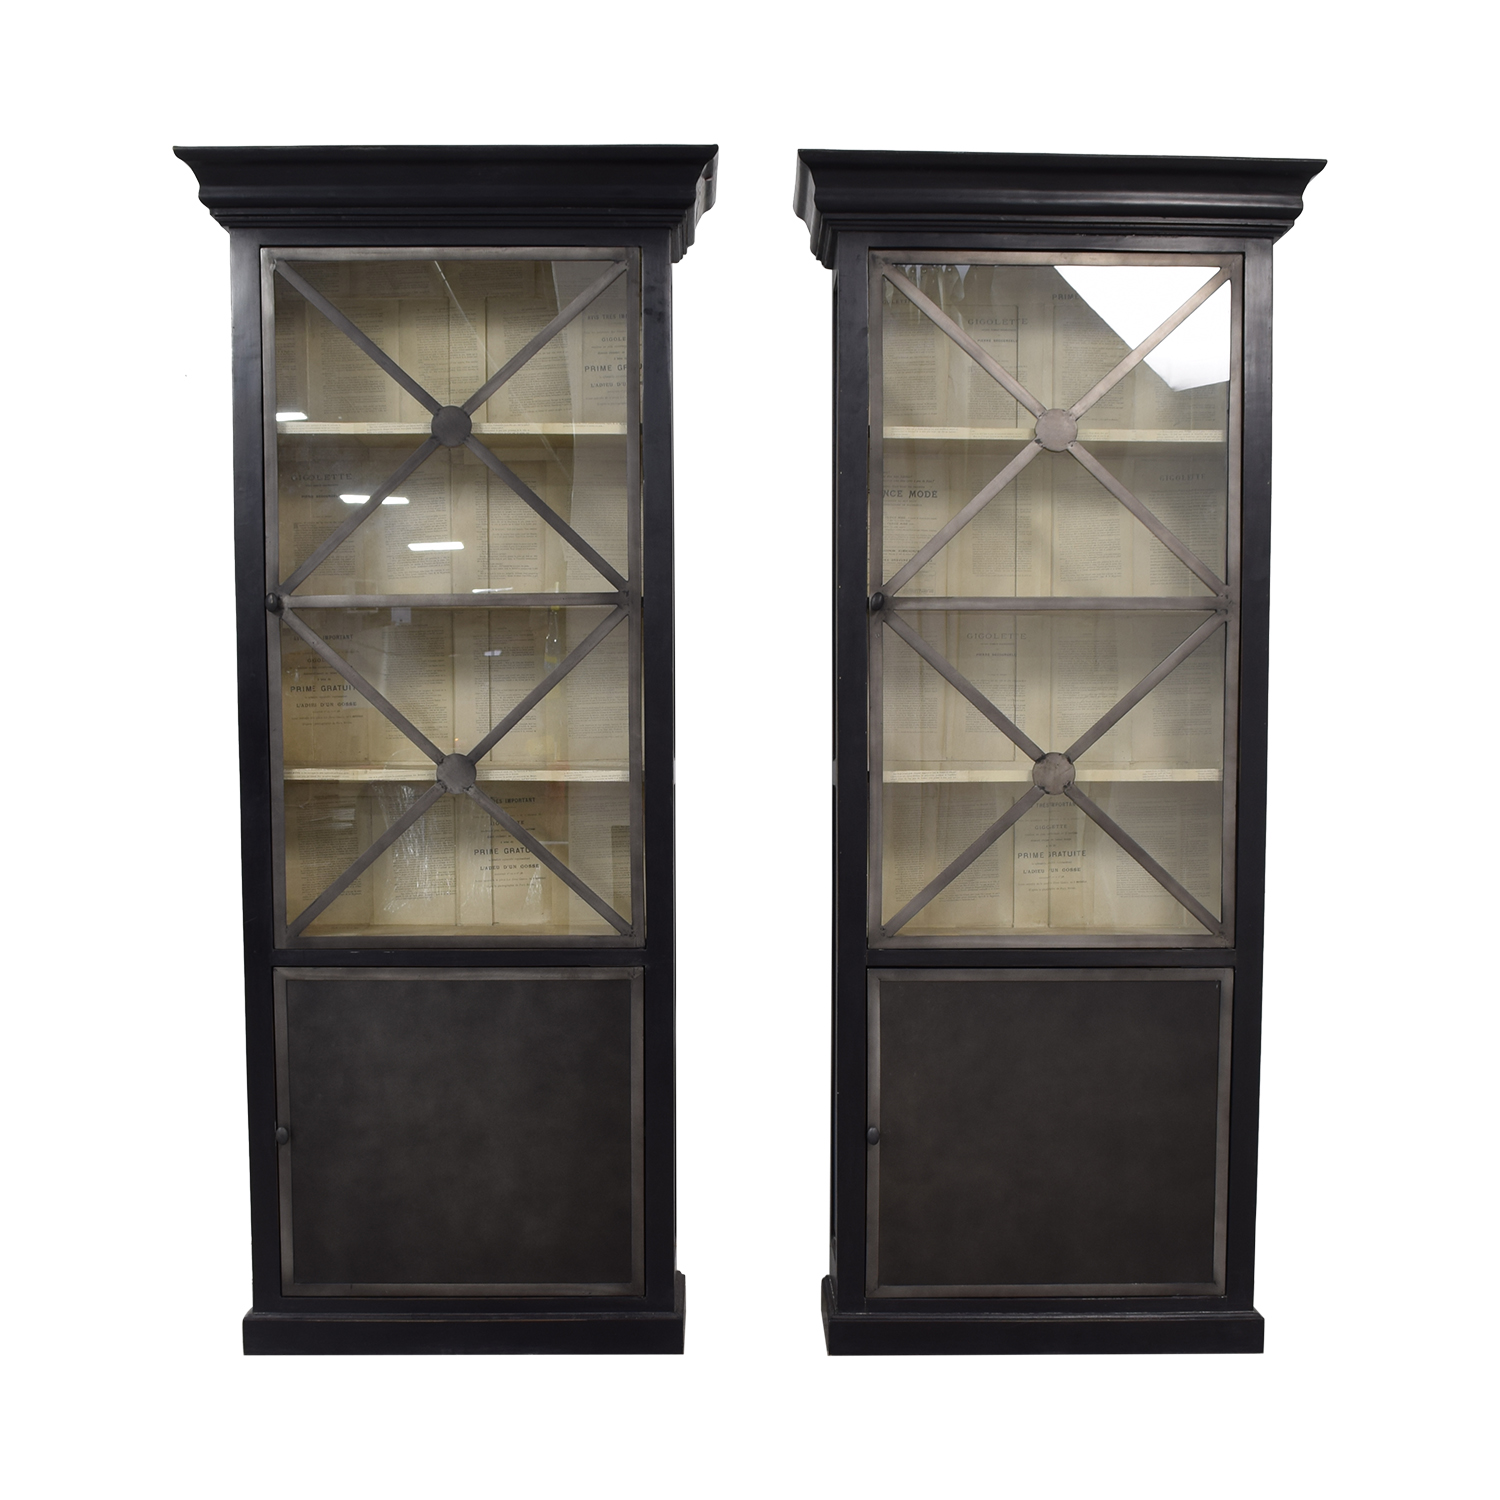 Wood Cabinets with Metal Framed Glass Doors used